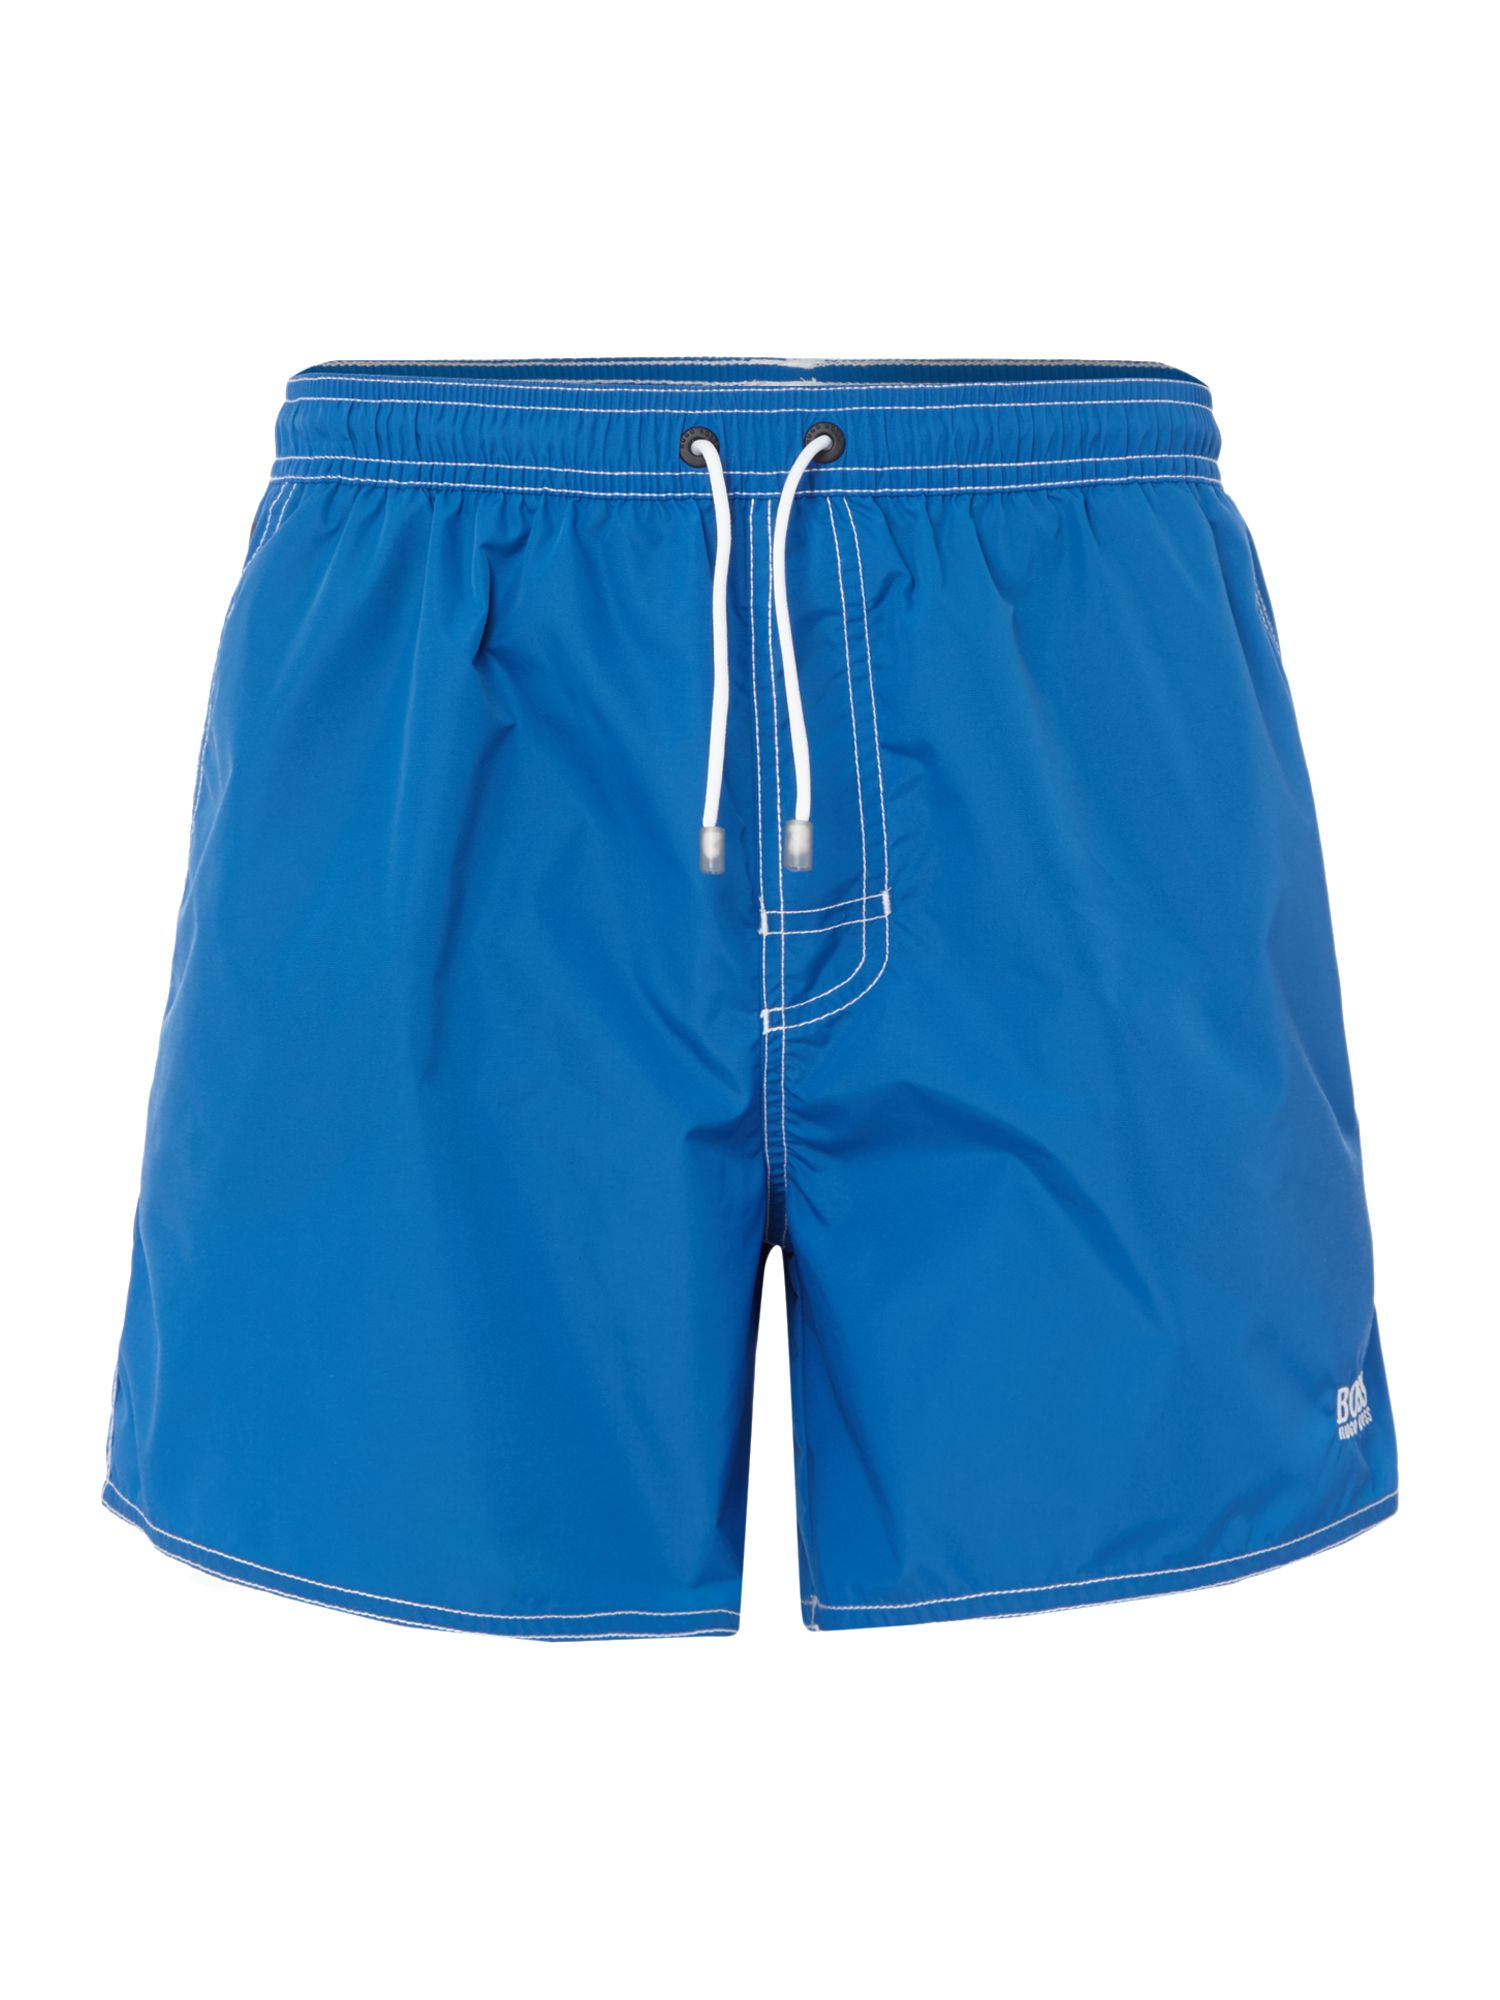 Men's Hugo Boss Lobster Shorts, Royal